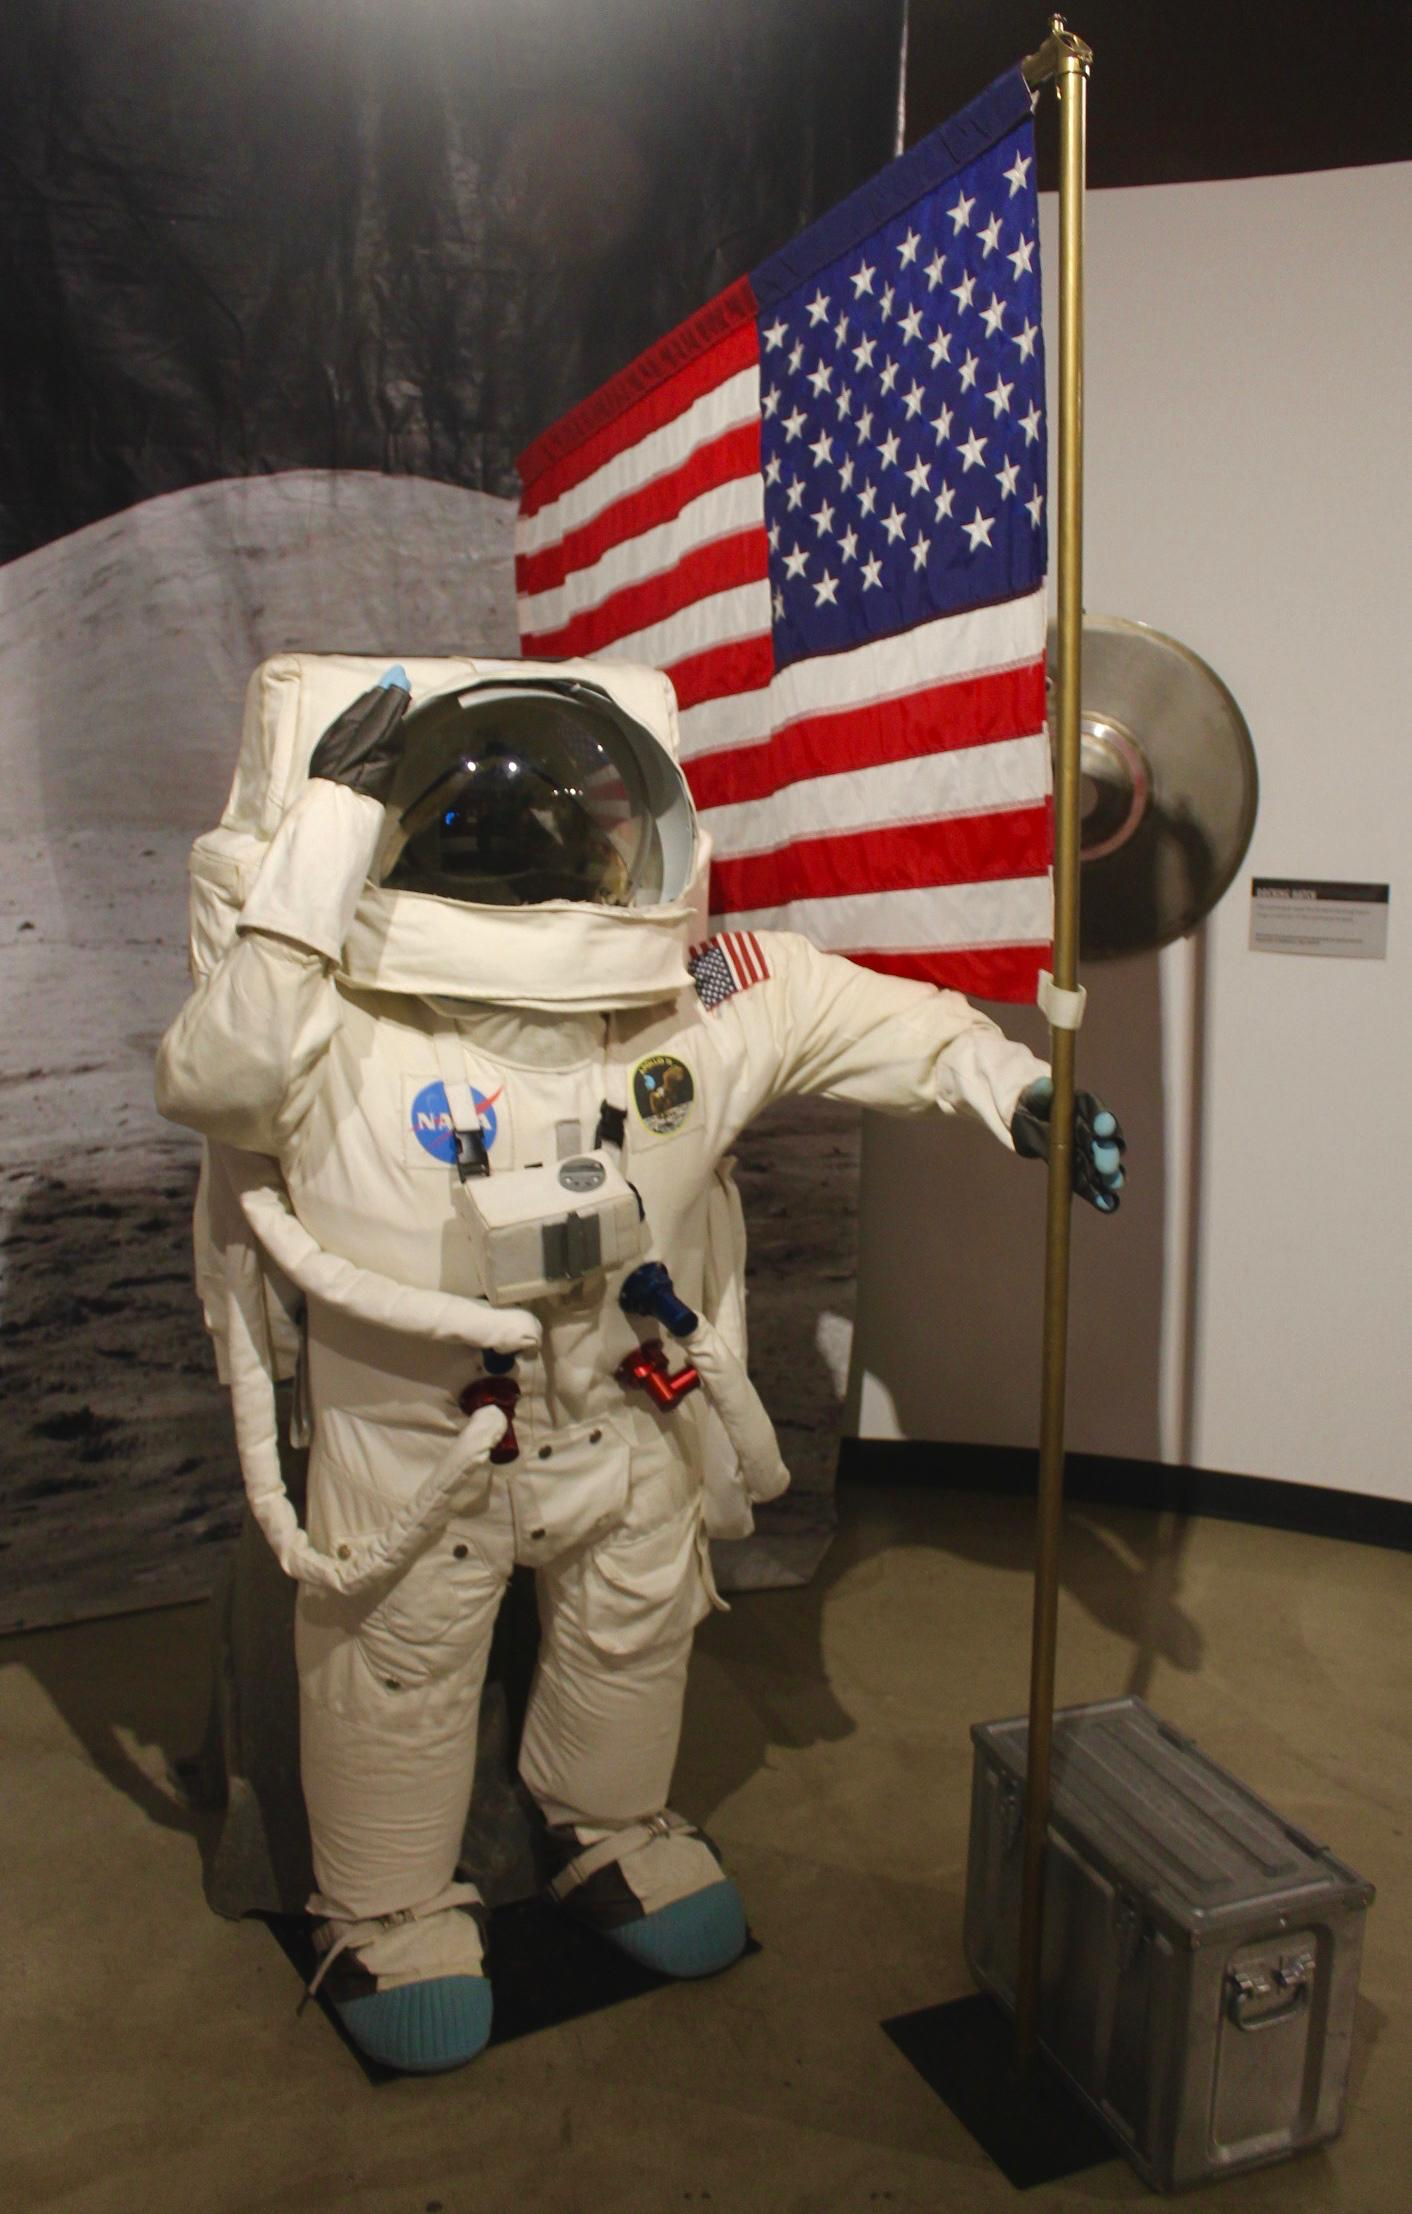 The museum features two aircrafts flown by Armstrong himself, an Apollo 11 moon rock, original Gemini and Apollo mission spacesuits, and other related artifacts and exhibits. A 56-foot dome in the center of the museum plays a short documentary and hosts a projection of the night sky. ADDRESS: 500 Apollo Dr., Wapakoneta, OH (45895). / Image: Rose Brewington // Published: 9.12.17